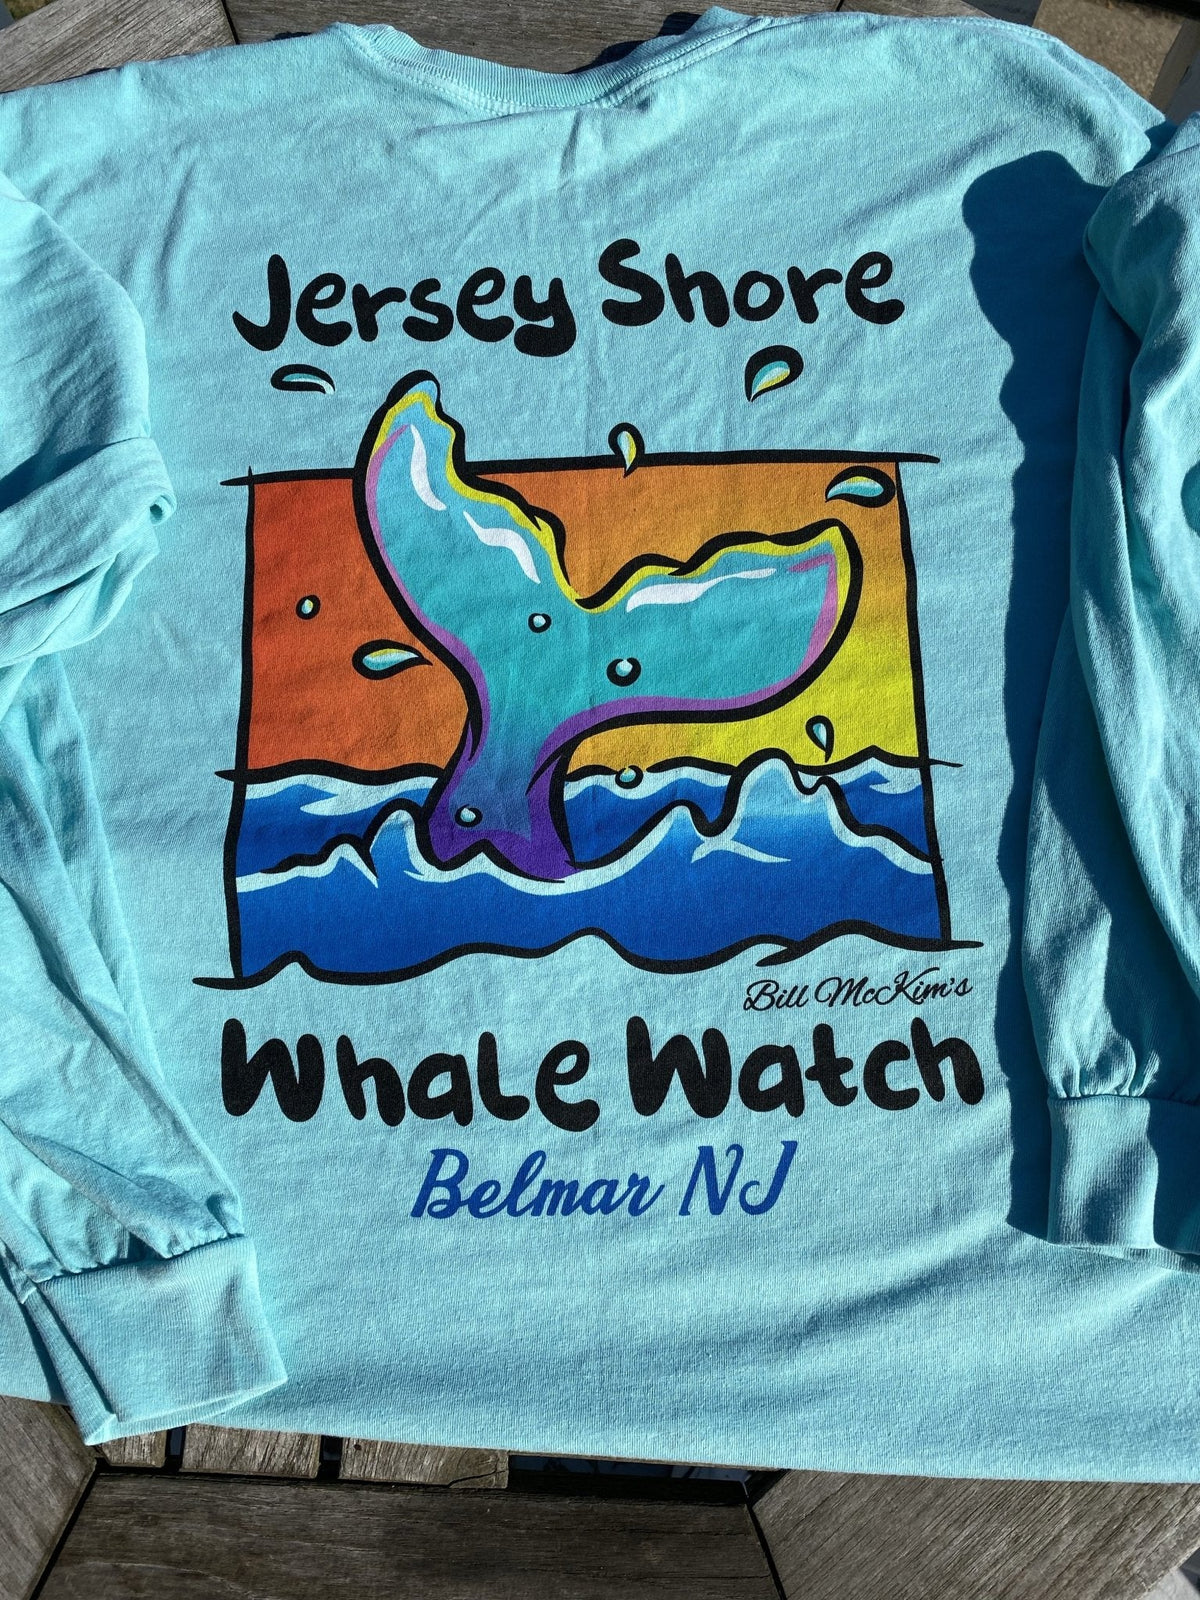 Long Sleeve Jersey Shore Whale Watch Tshirt Amazing Quality Preshrunk - Bill McKim Photography -Jersey Shore whale watch tours